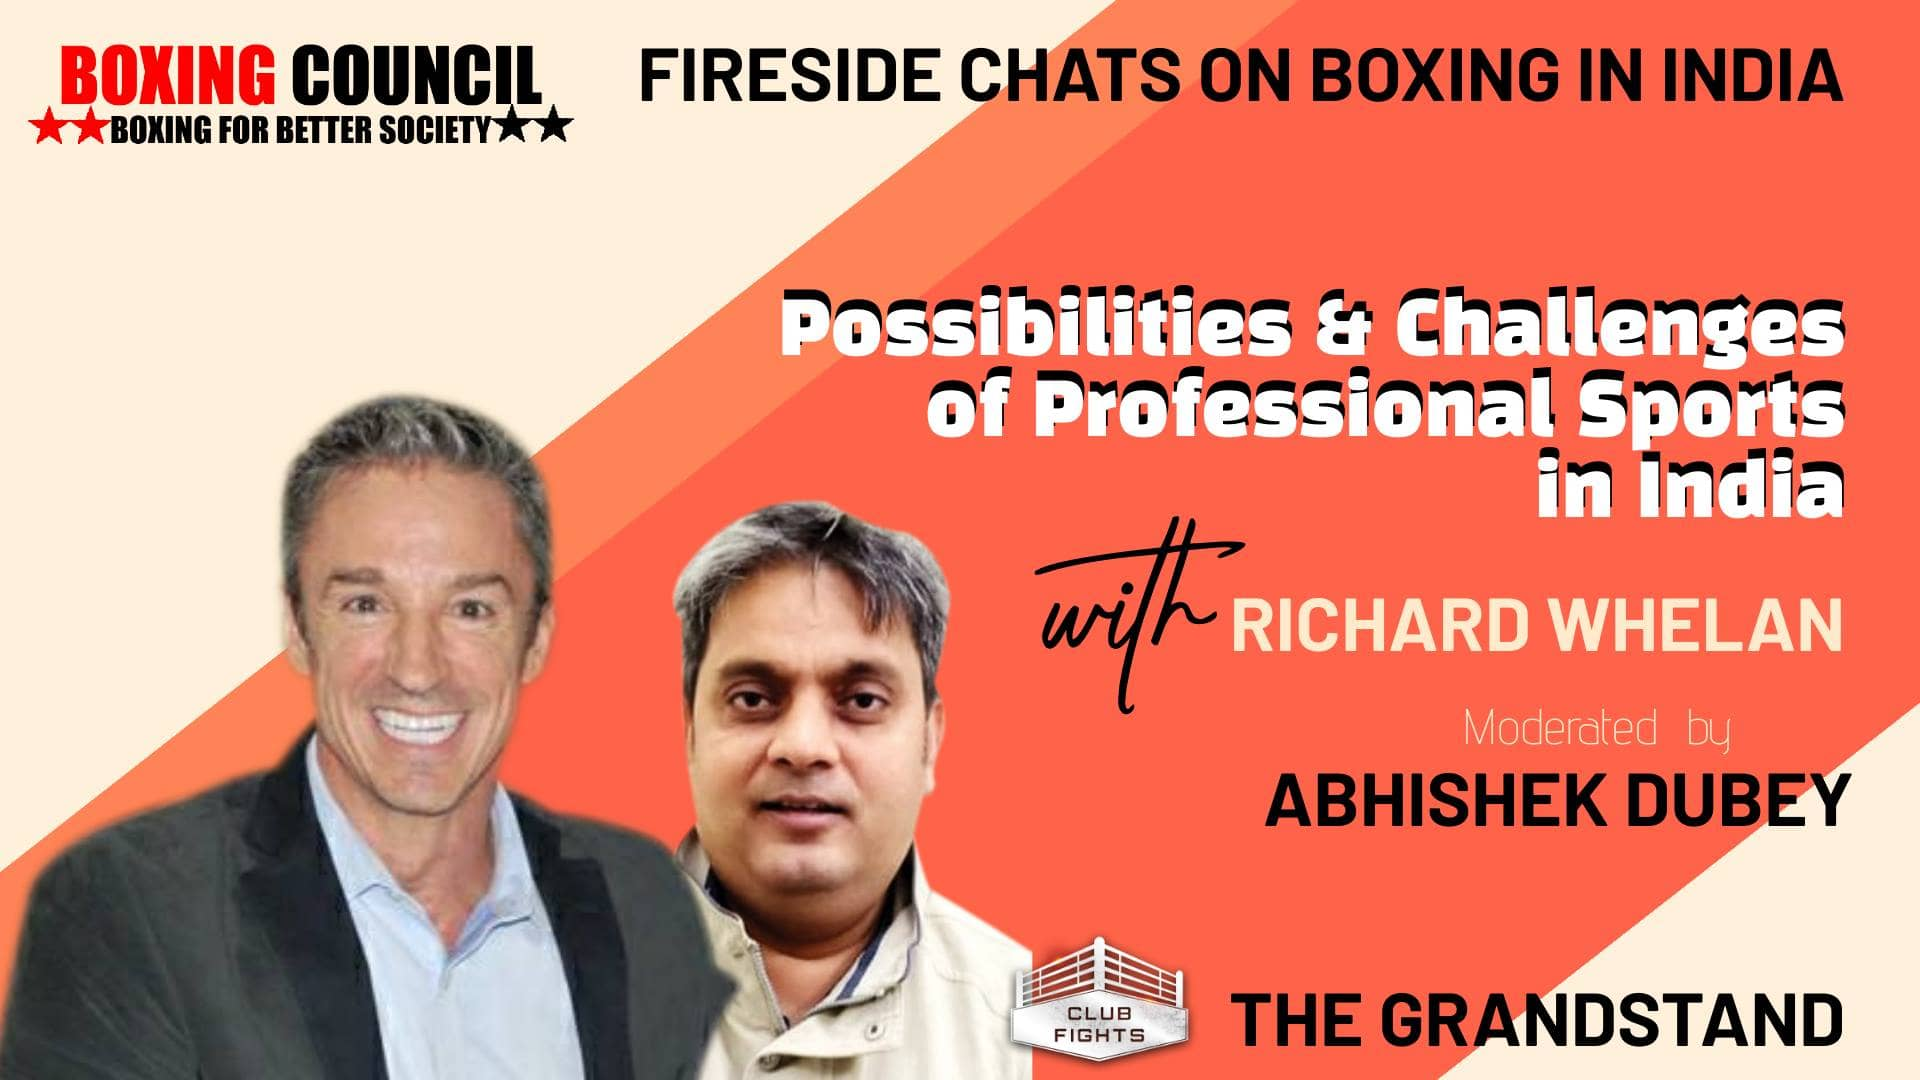 Fireside-Chats-on-Boxing-in-India-Richard-Whelan